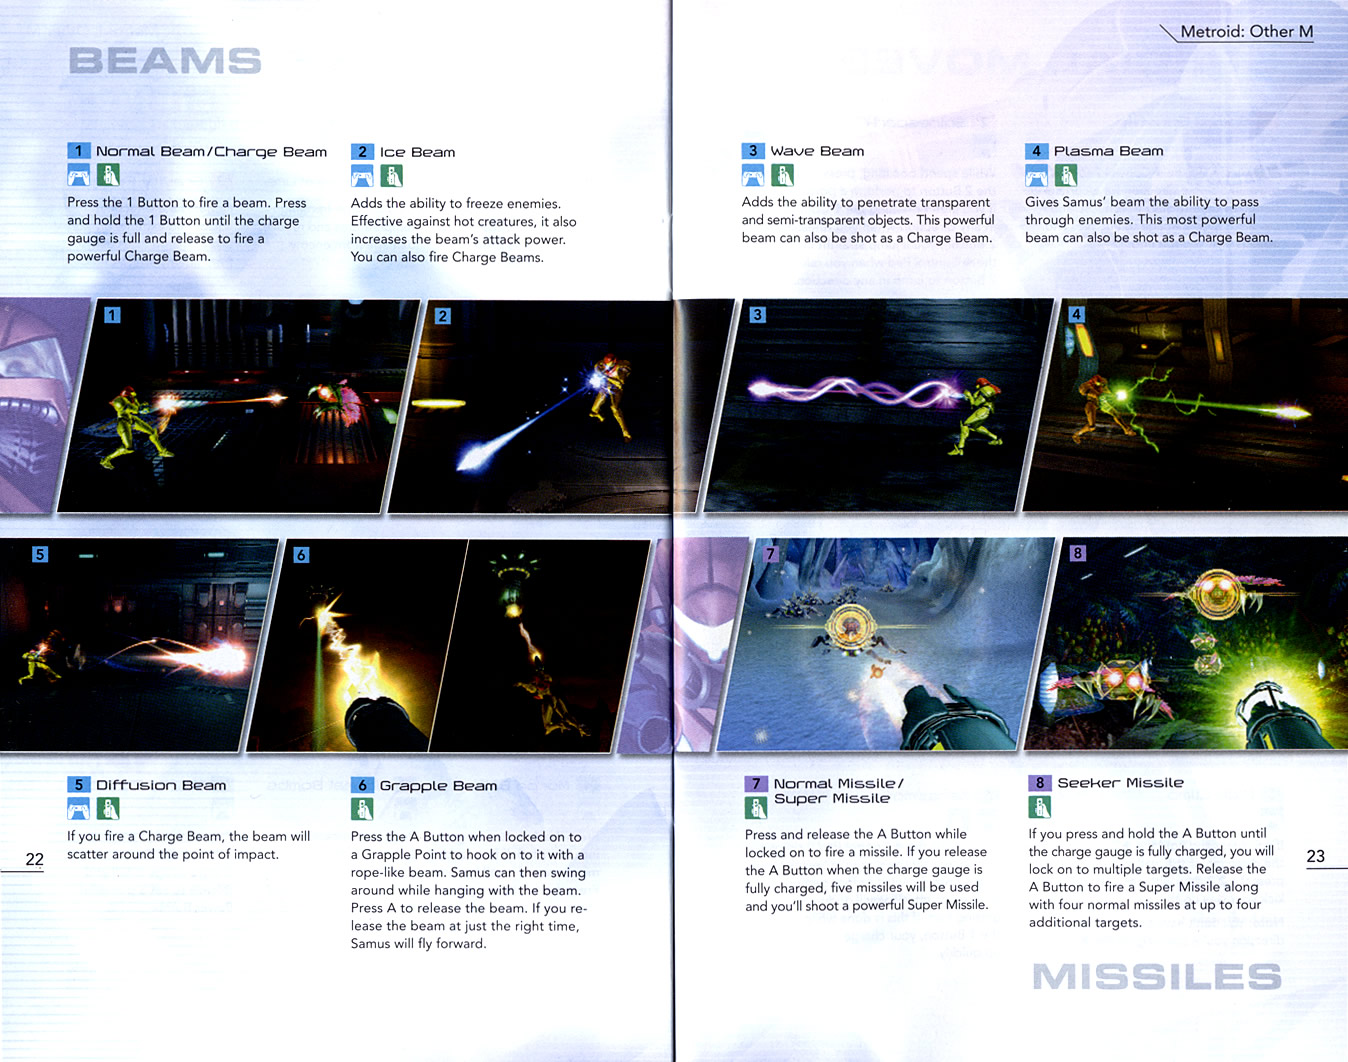 Metroid: Other M instruction manual